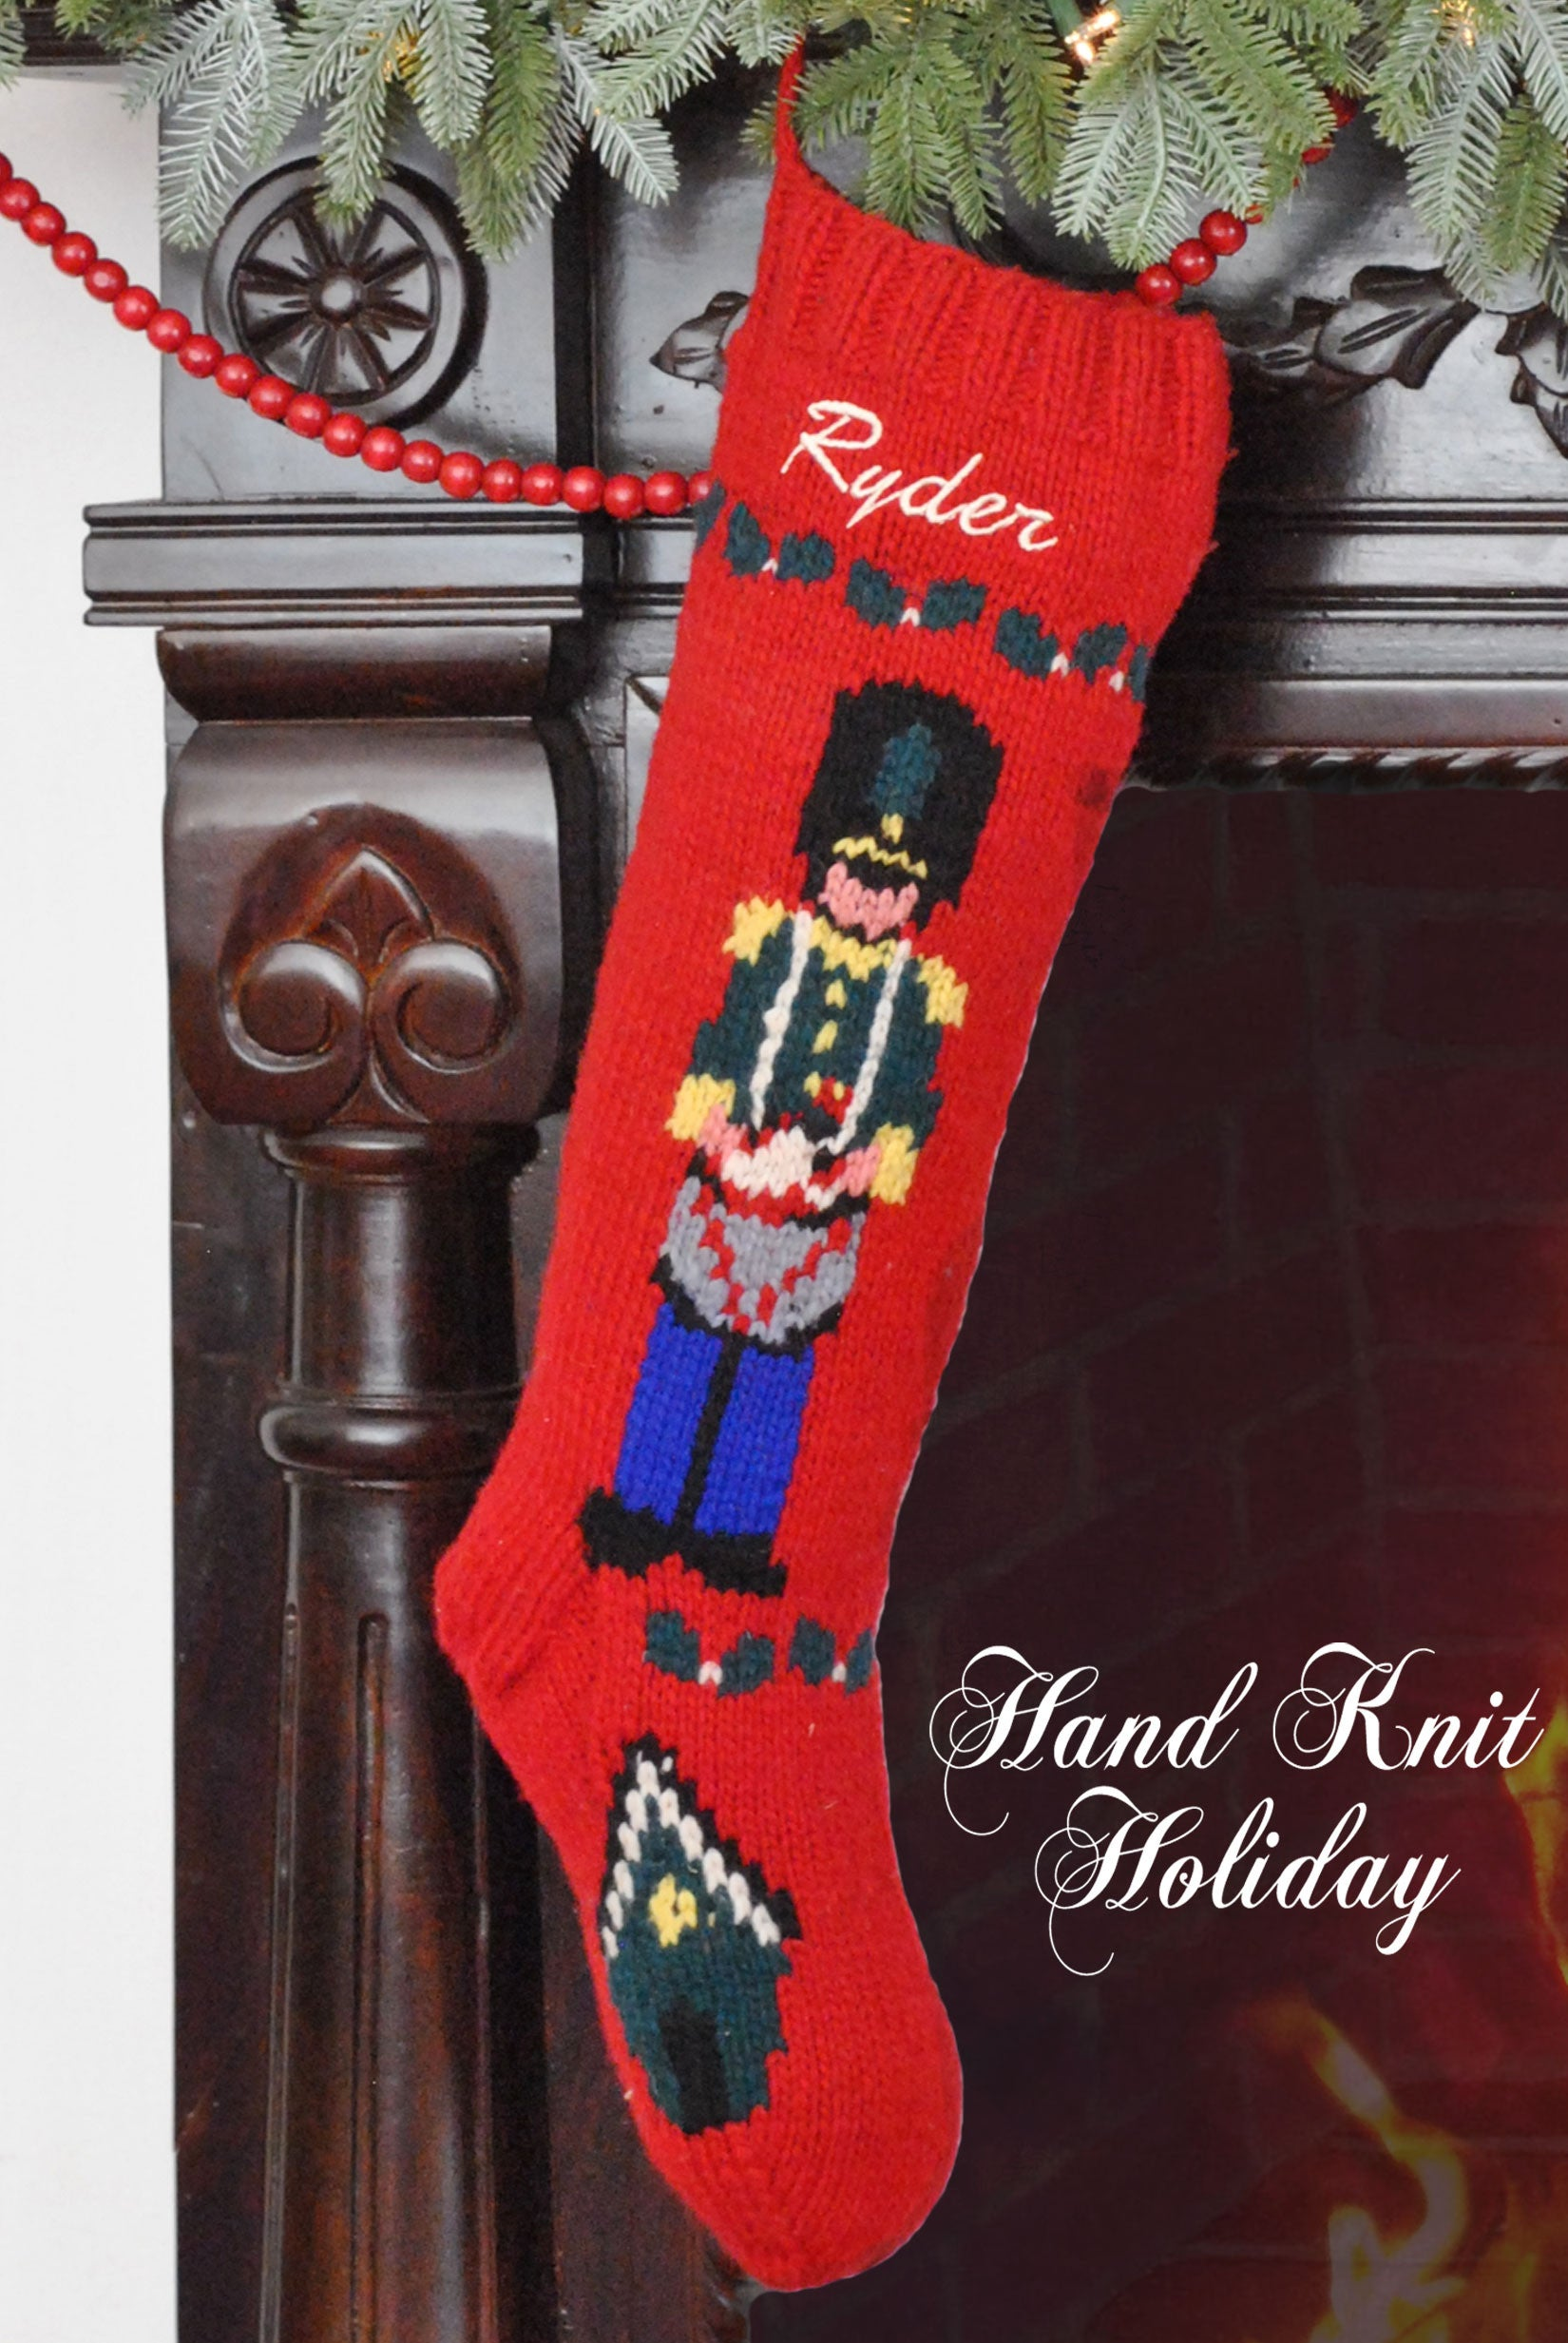 Personalized Drummer Boy Christmas Stocking – Hand Knit Holiday